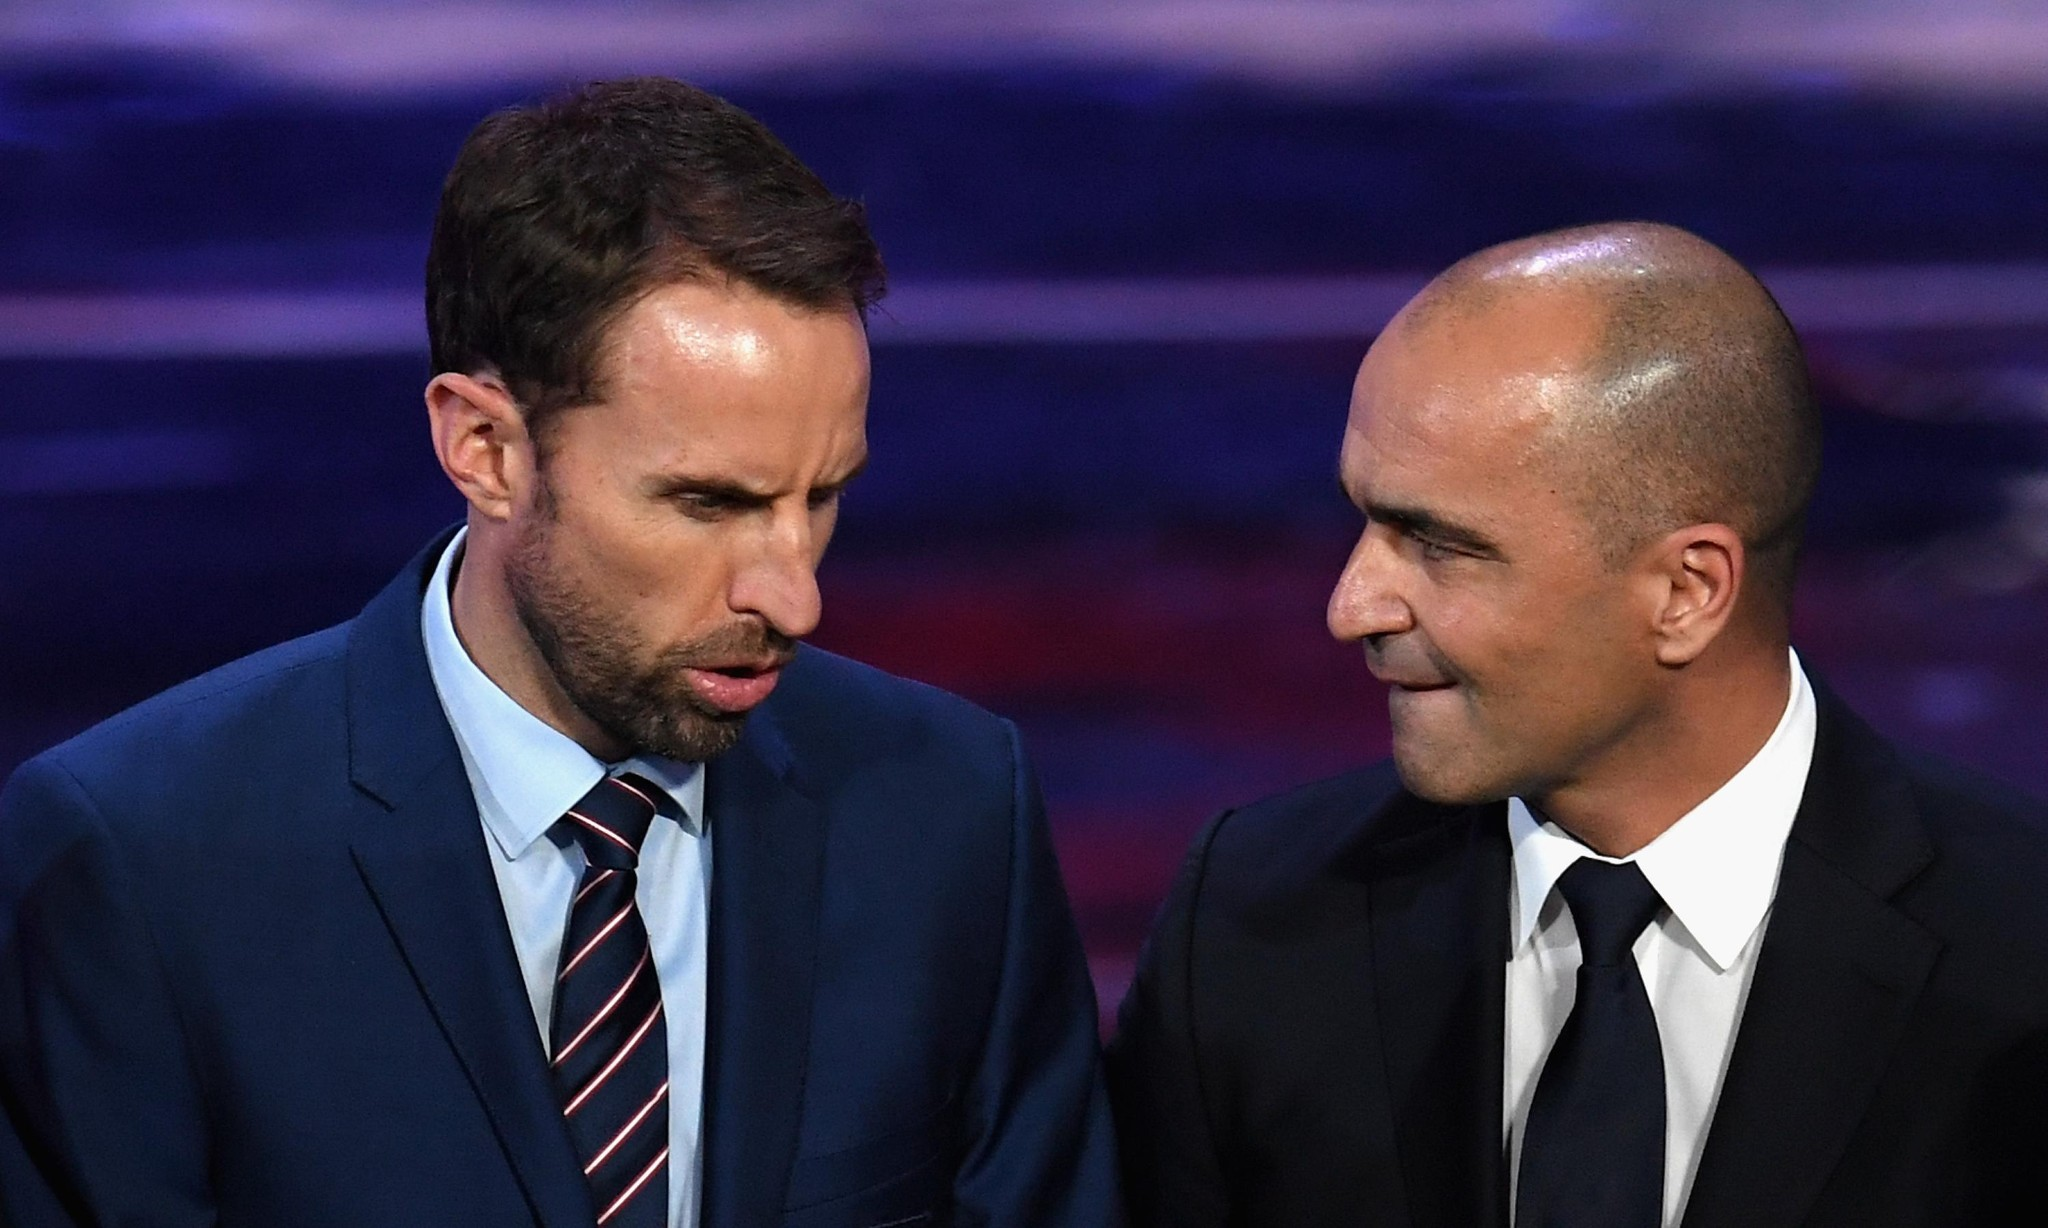 World Cup 2018 draw: England get lucky but Gareth Southgate urges caution